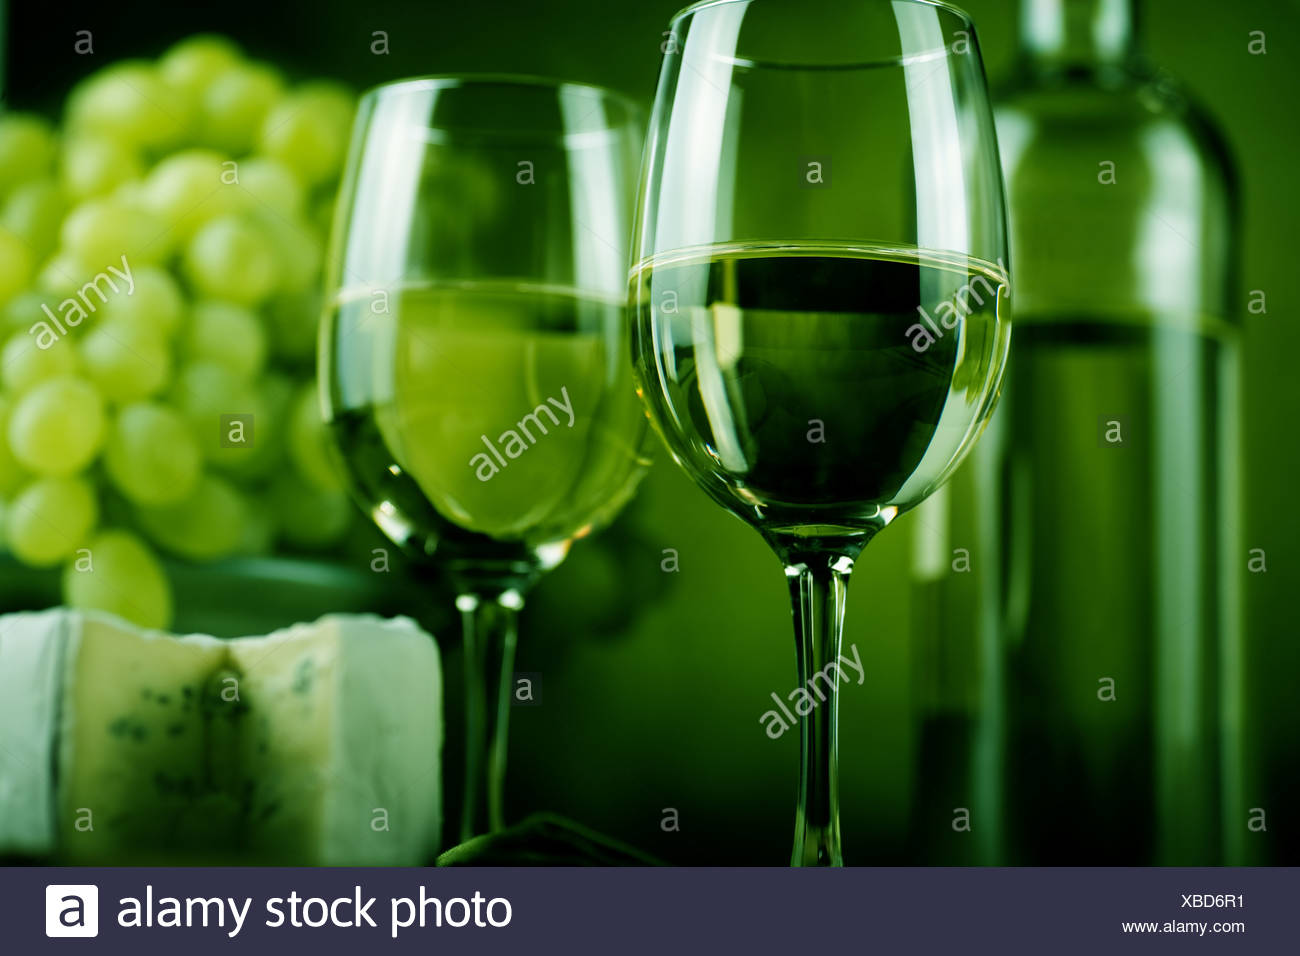 wine bottle and cheese - Stock Image